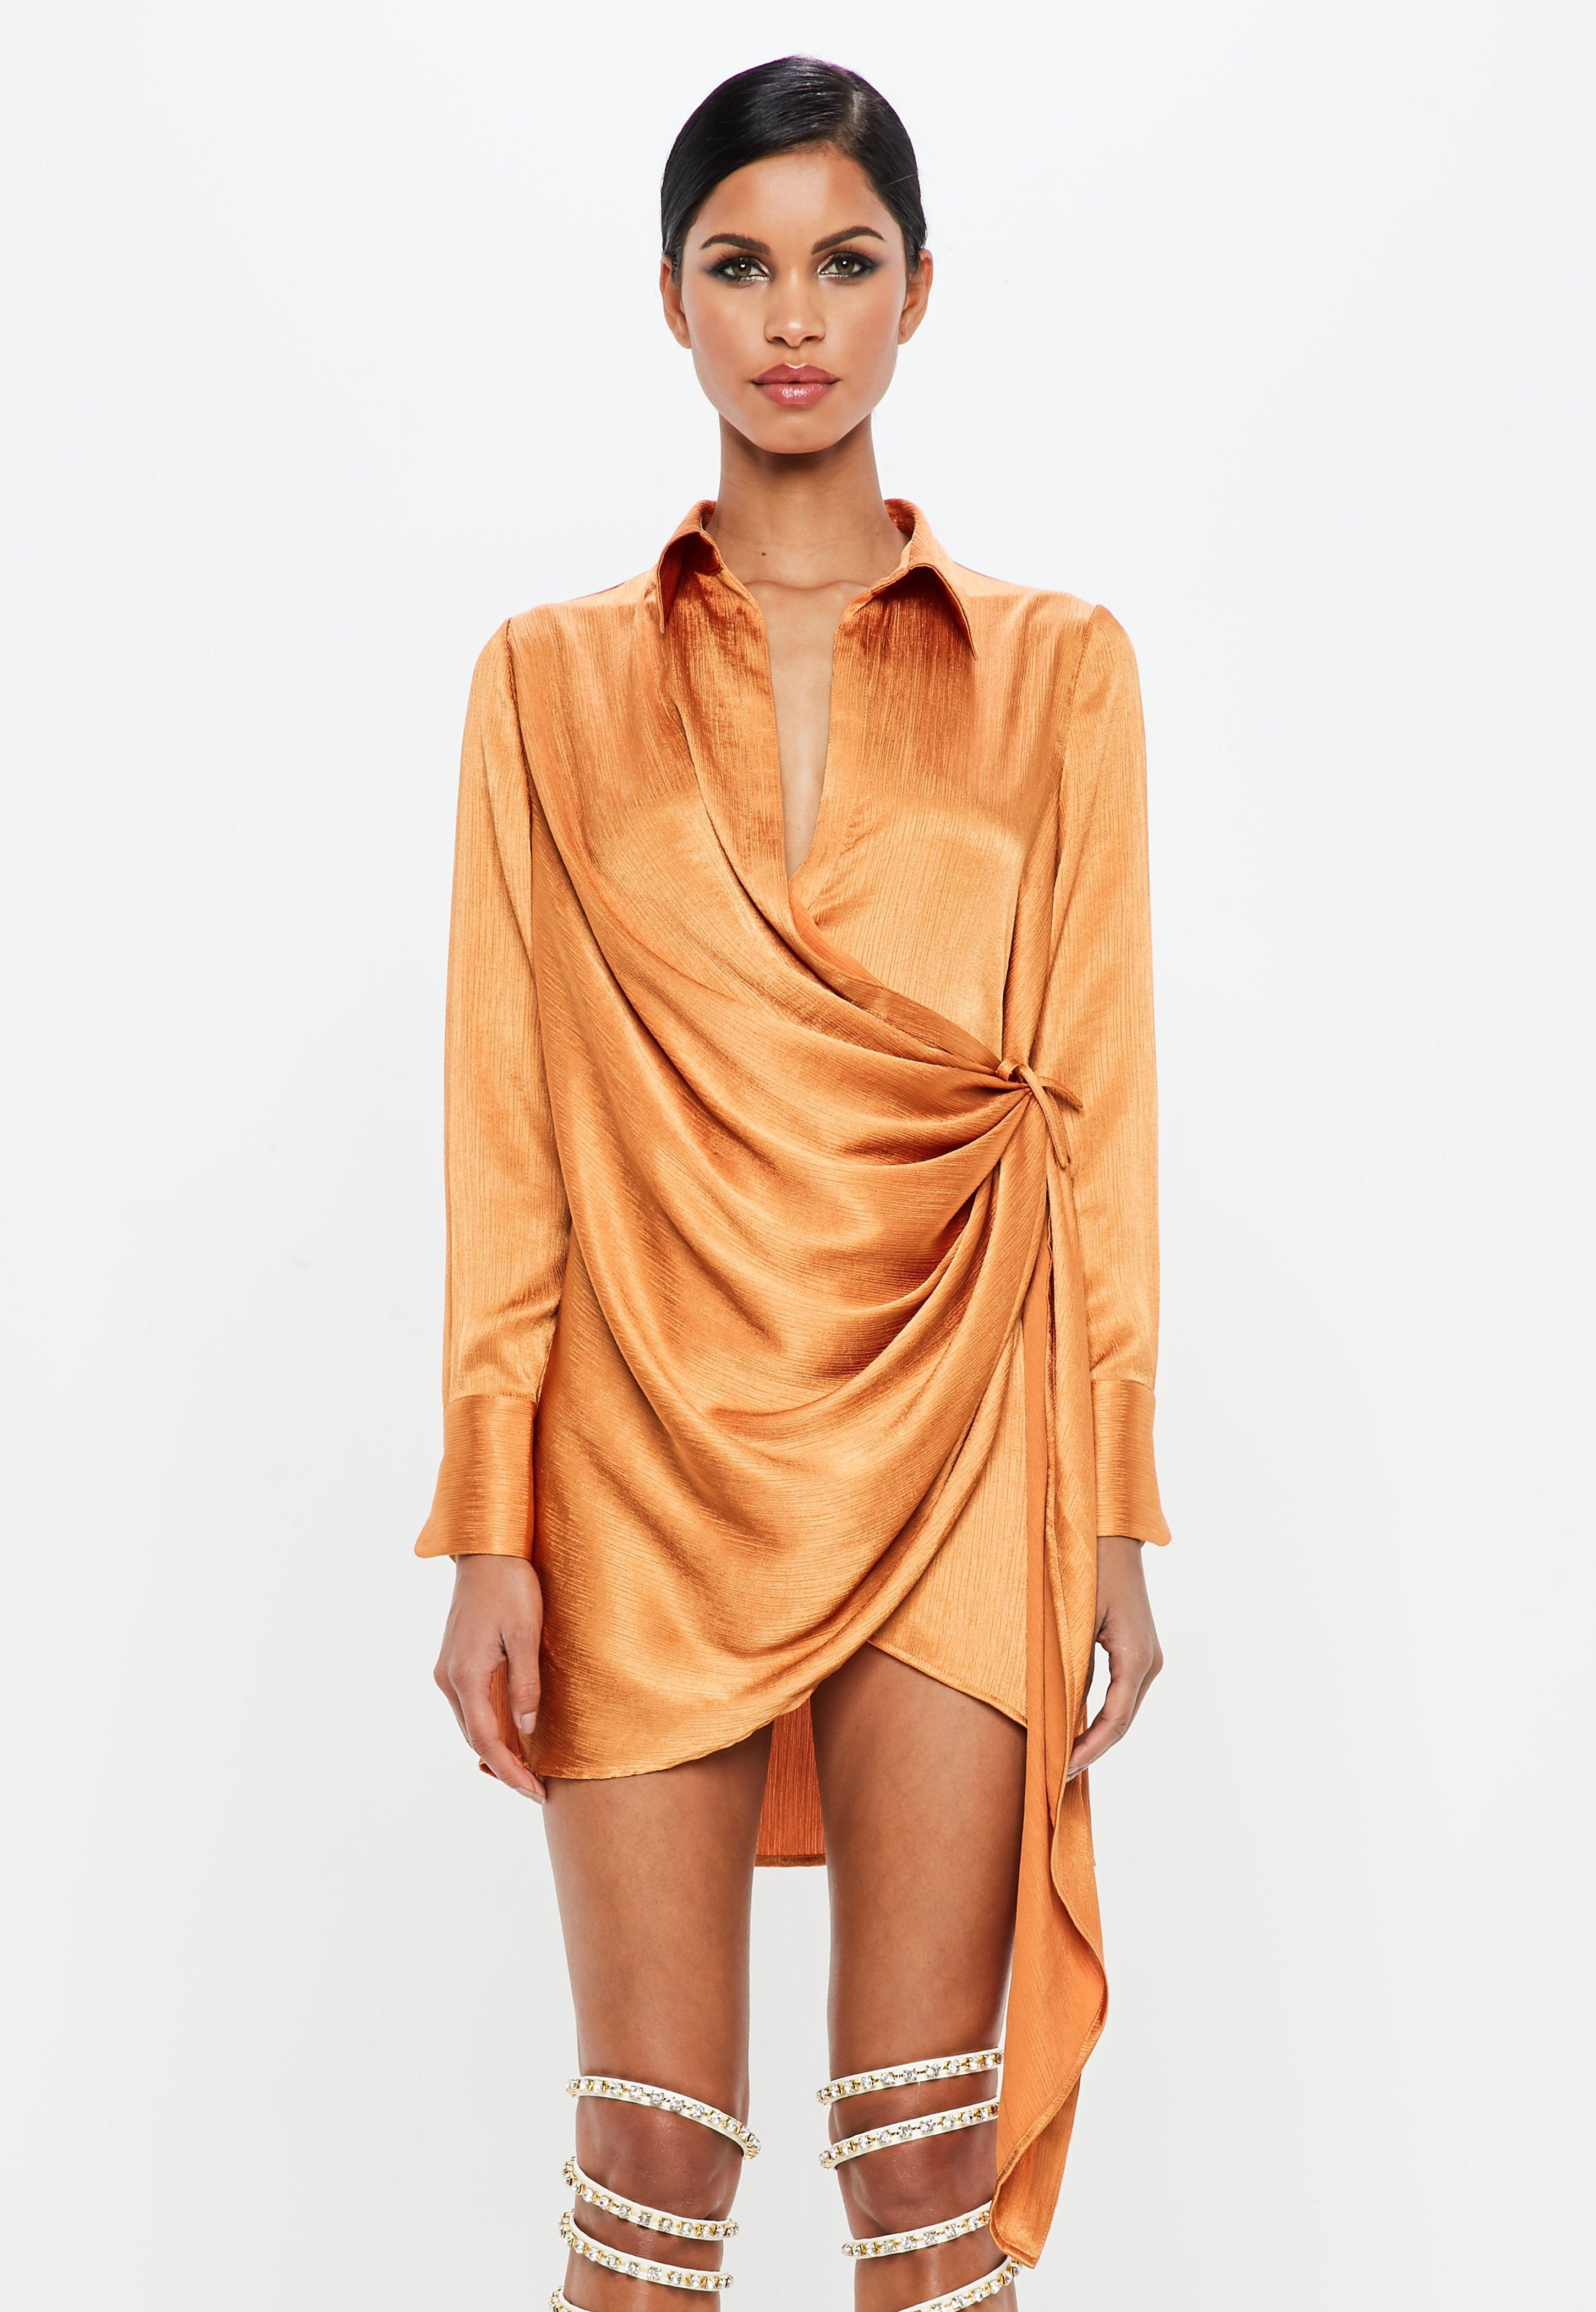 dde6c50f314b Lyst - Missguided Peace + Love Orange Textured Satin Wrap Dress in ...